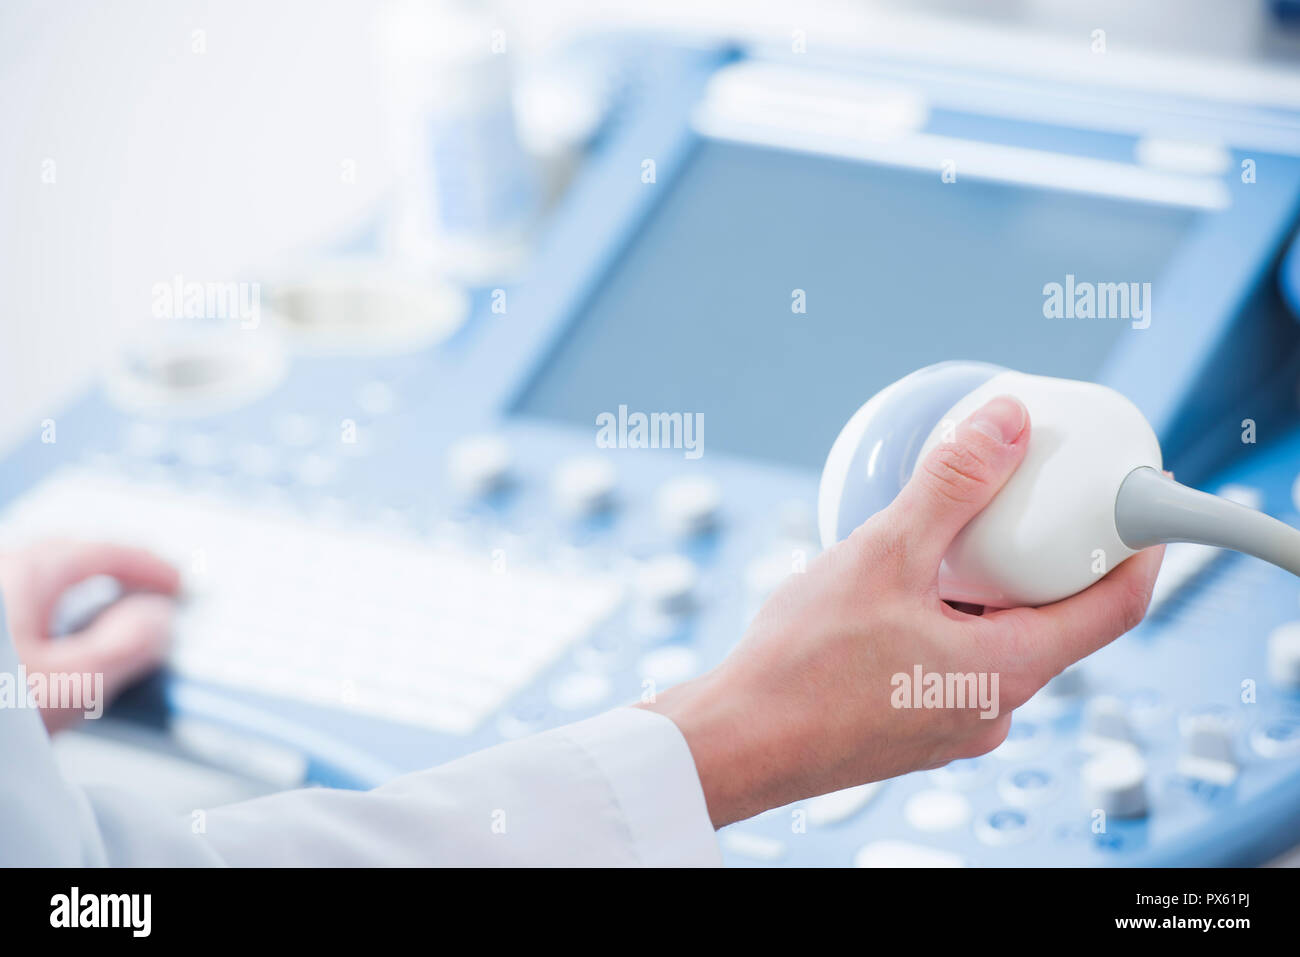 young woman doctor's hands close up preparing for an ultrasound device scan. - Stock Image